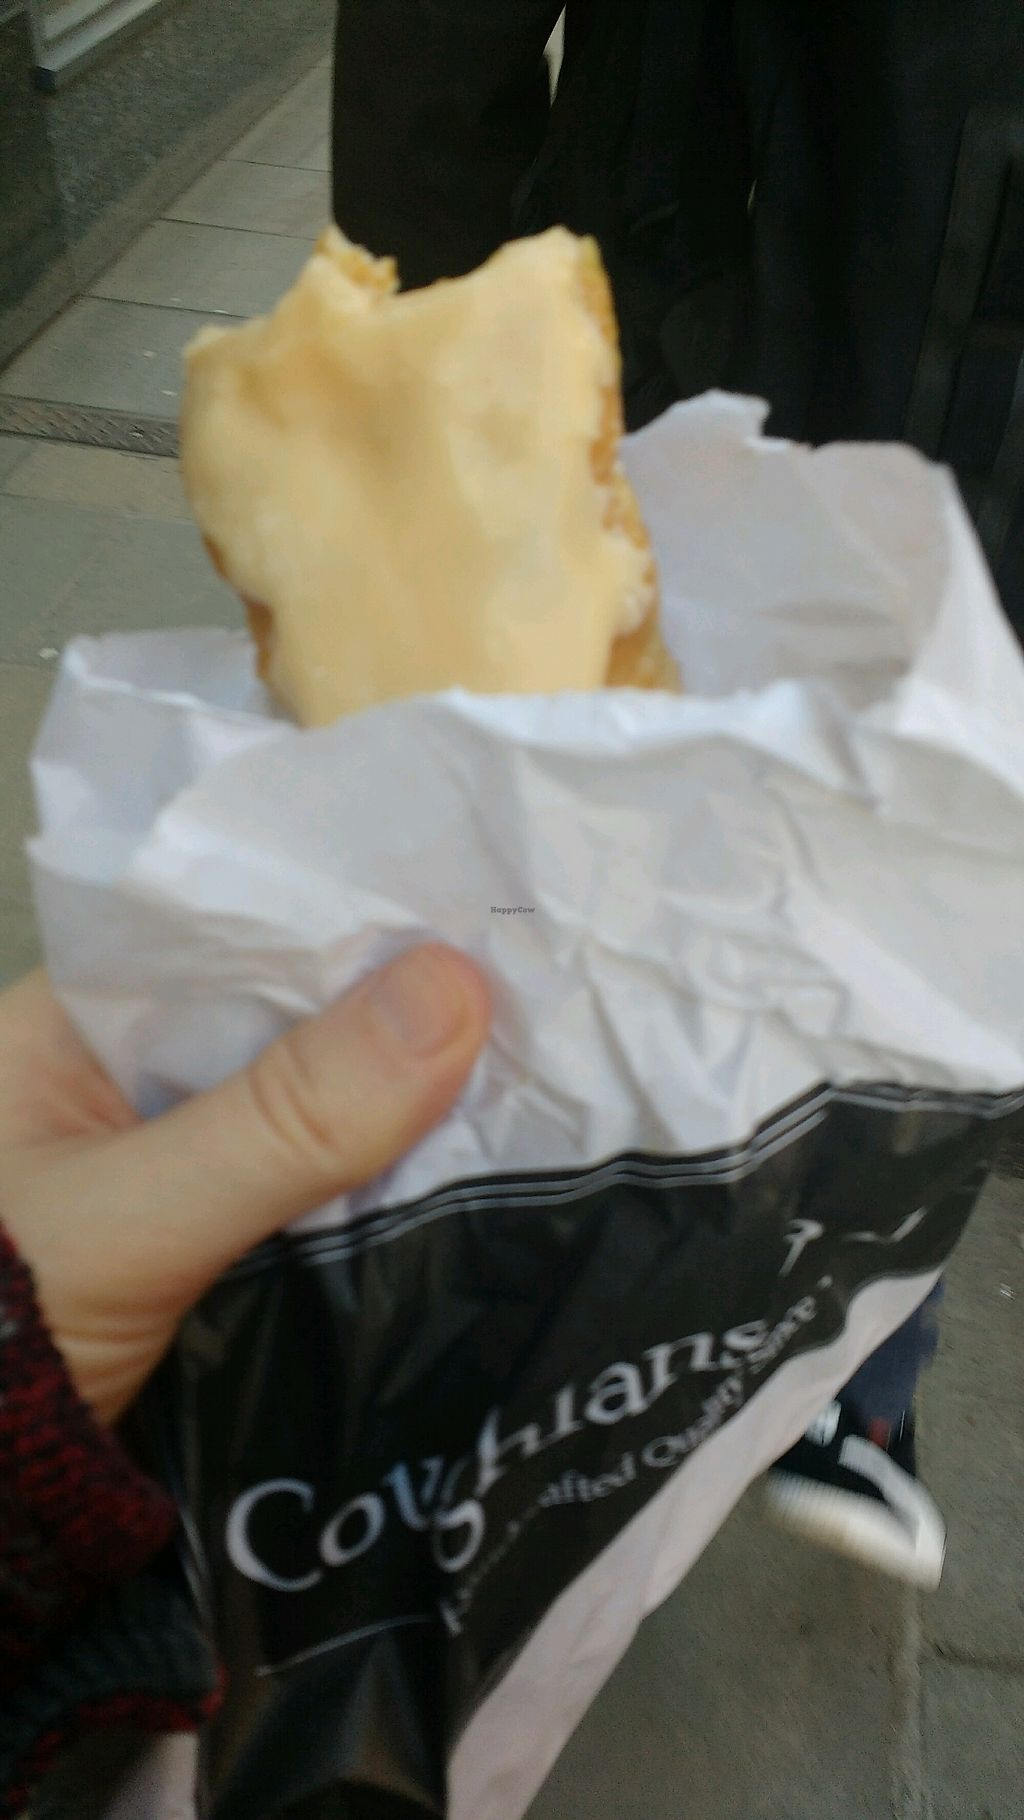 """Photo of Coughlans Bakery  by <a href=""""/members/profile/MorganaMcHale-Dill"""">MorganaMcHale-Dill</a> <br/>vegan butterscotch yum yum  <br/> February 19, 2018  - <a href='/contact/abuse/image/112559/361408'>Report</a>"""